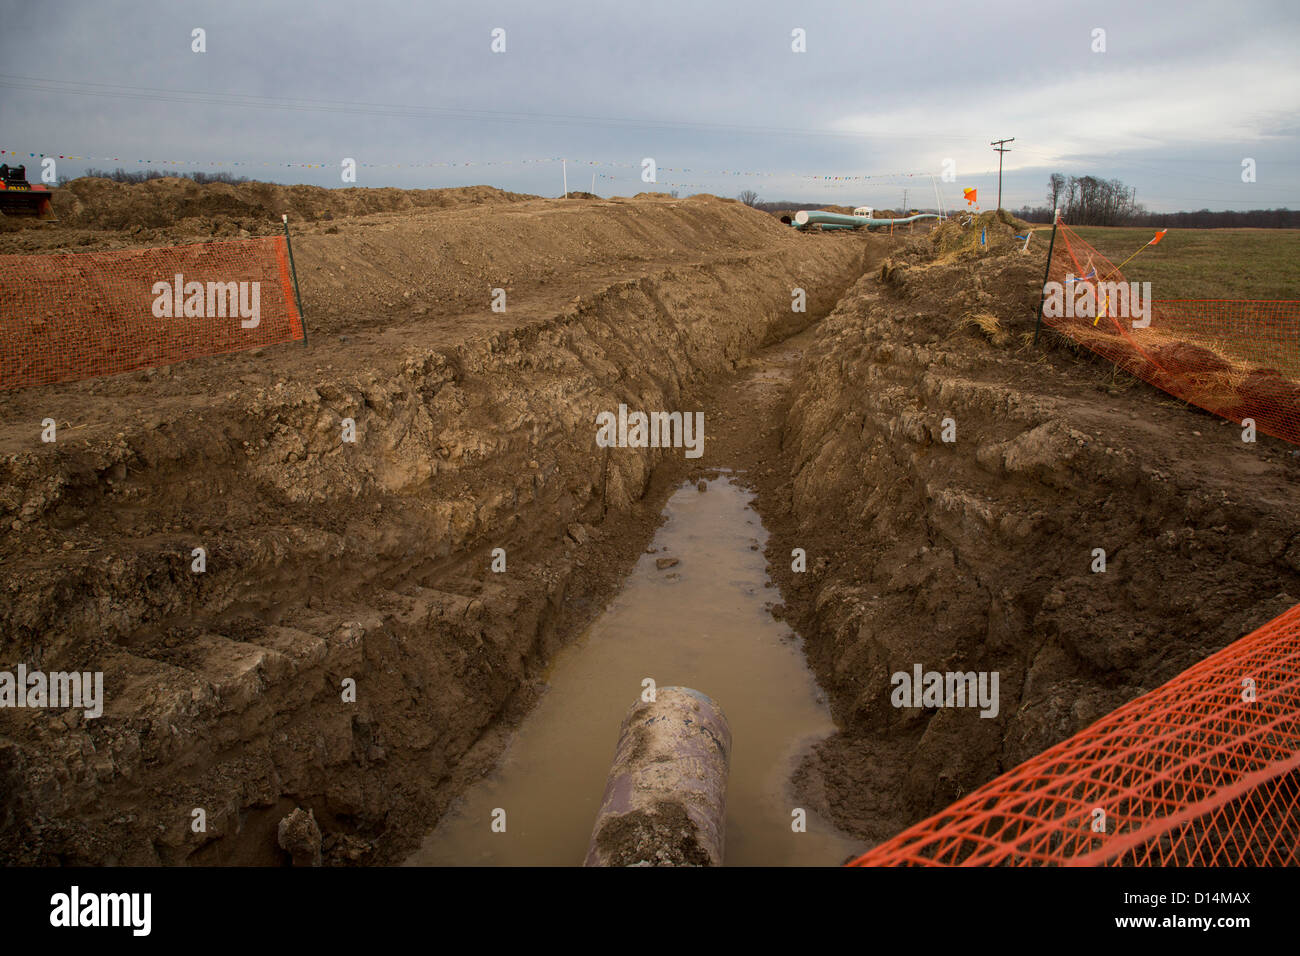 Construction of oil pipeline to replace line that spilled tar sands oil into the Kalamazoo River in 2010. - Stock Image